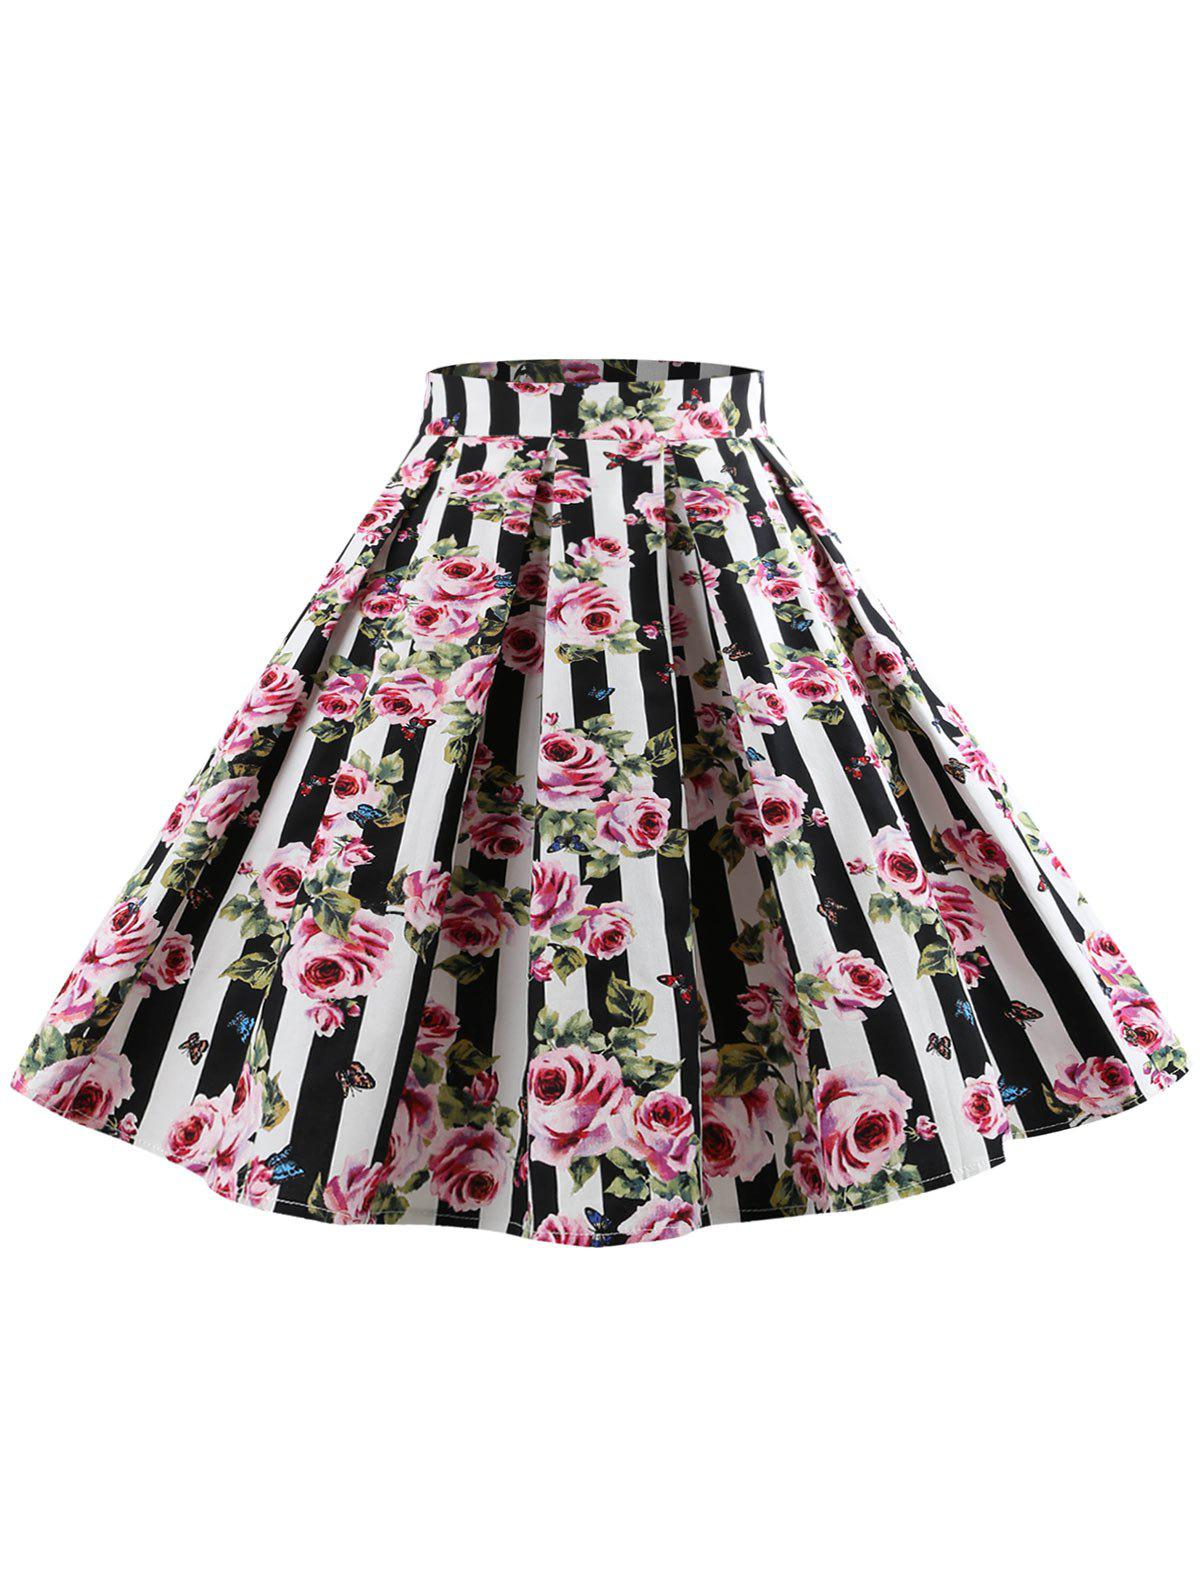 Fashion Floral Print Zipper Waist Skirt